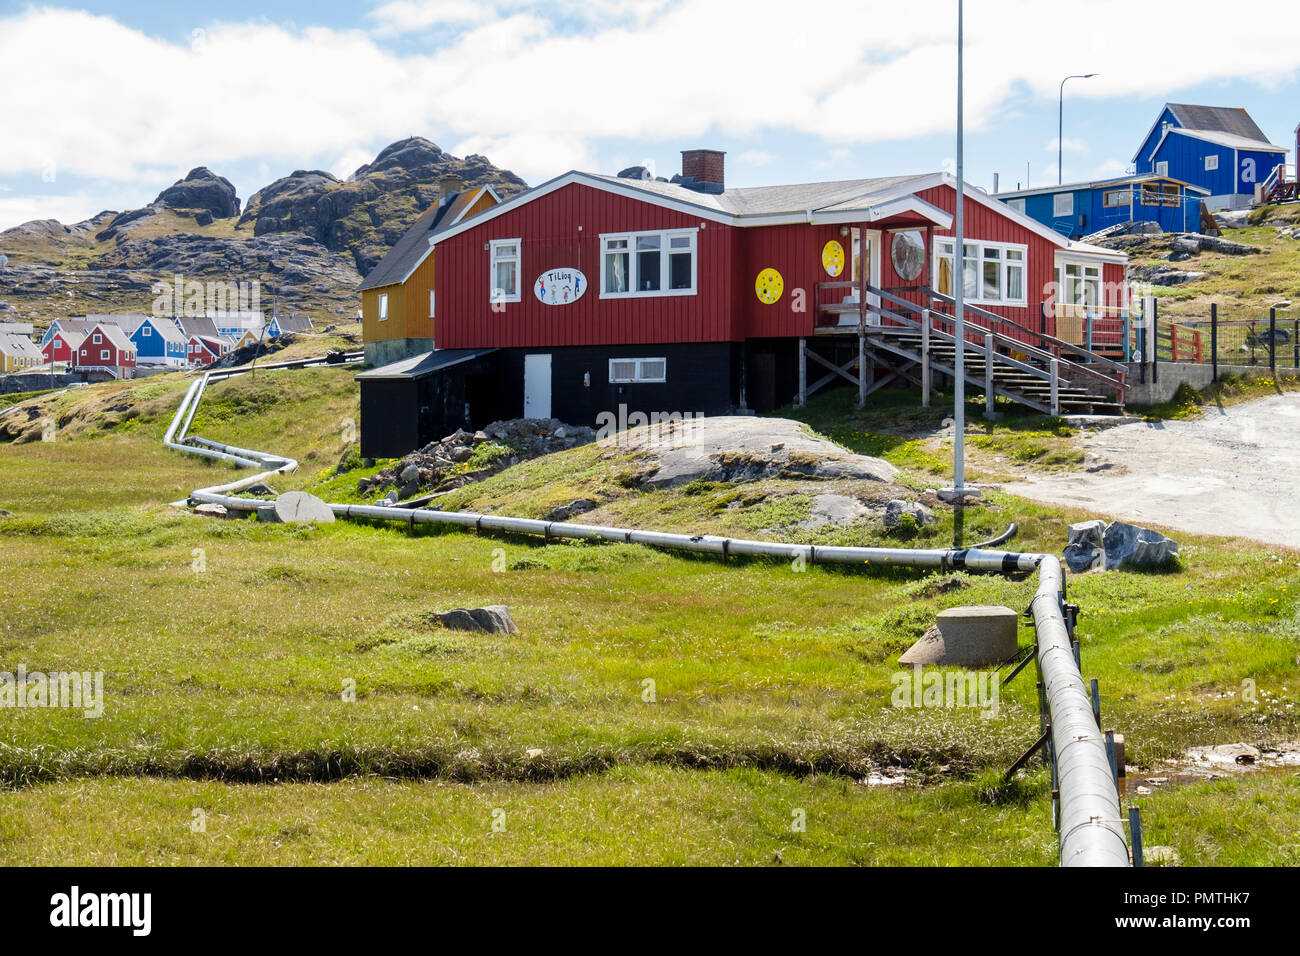 Overground pipes for water and waste seen exposed in summer. Paamiut (Frederikshåb), Sermersooq, southwestern Greenland. Stock Photo